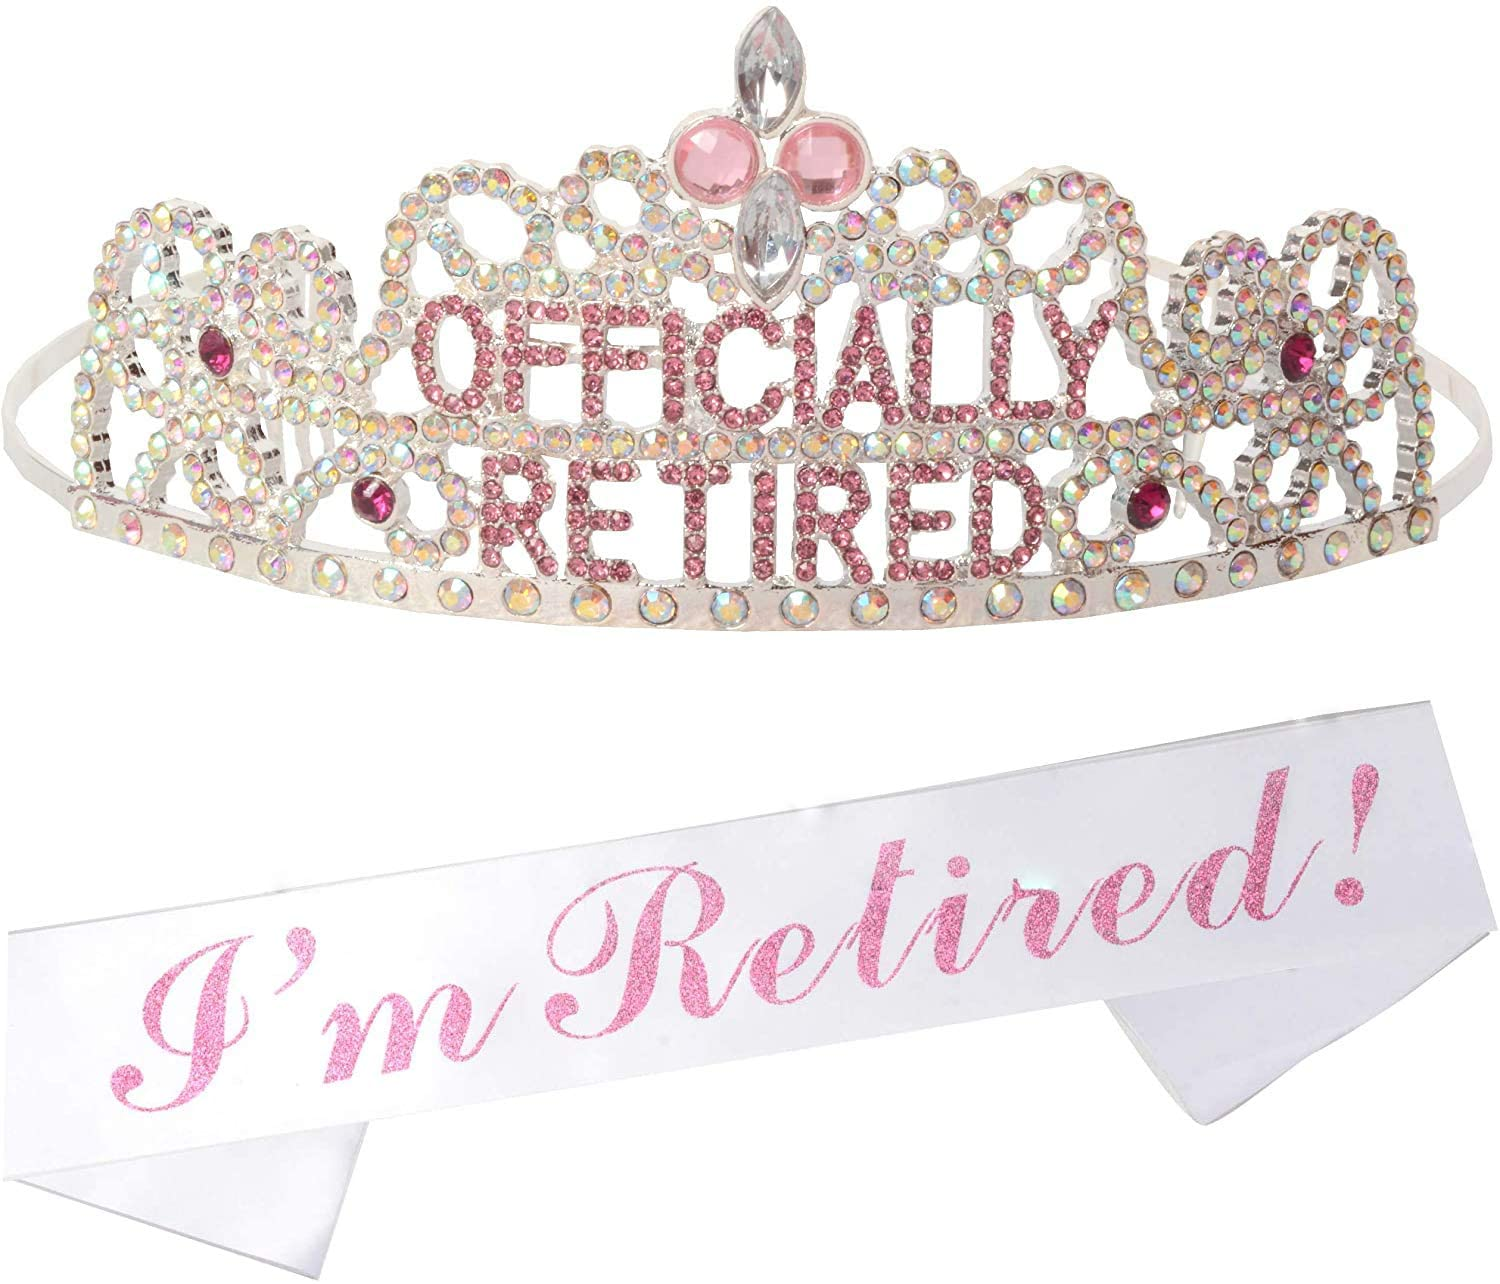 9. Officially Retired Crown